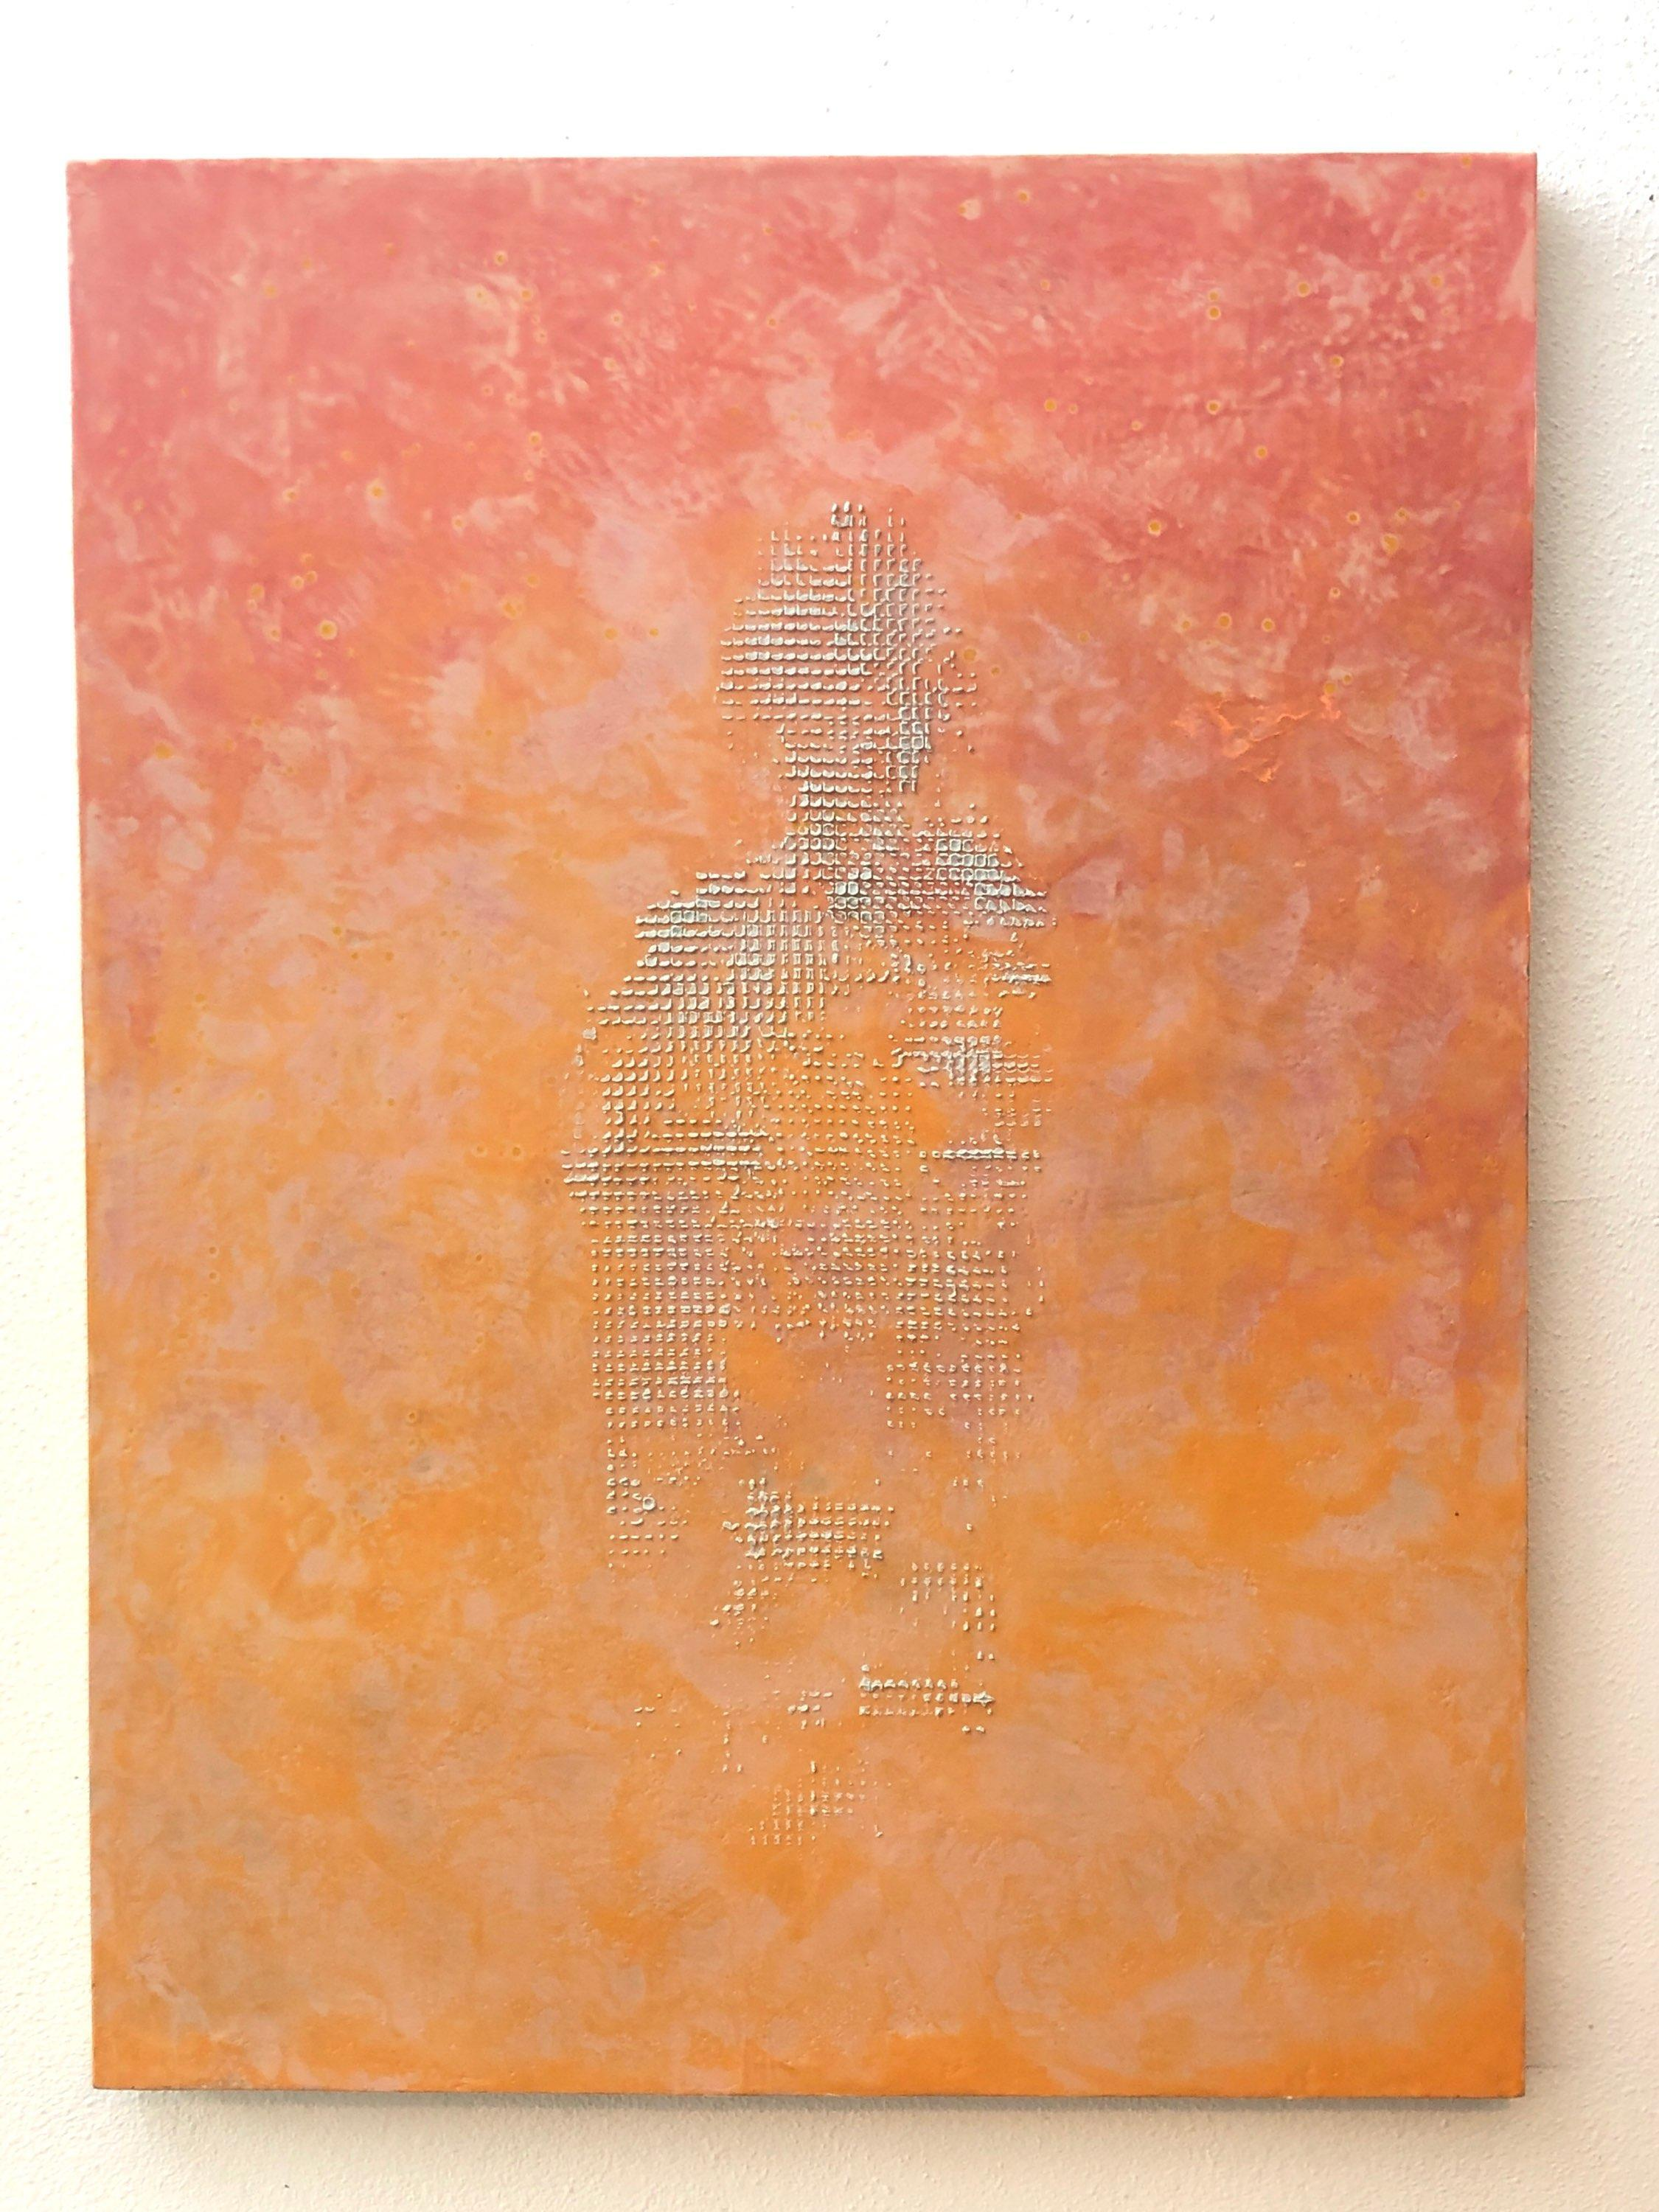 That was Then - Abstract Painting w/ Orange, Pink, Grey White- Luscious Texture